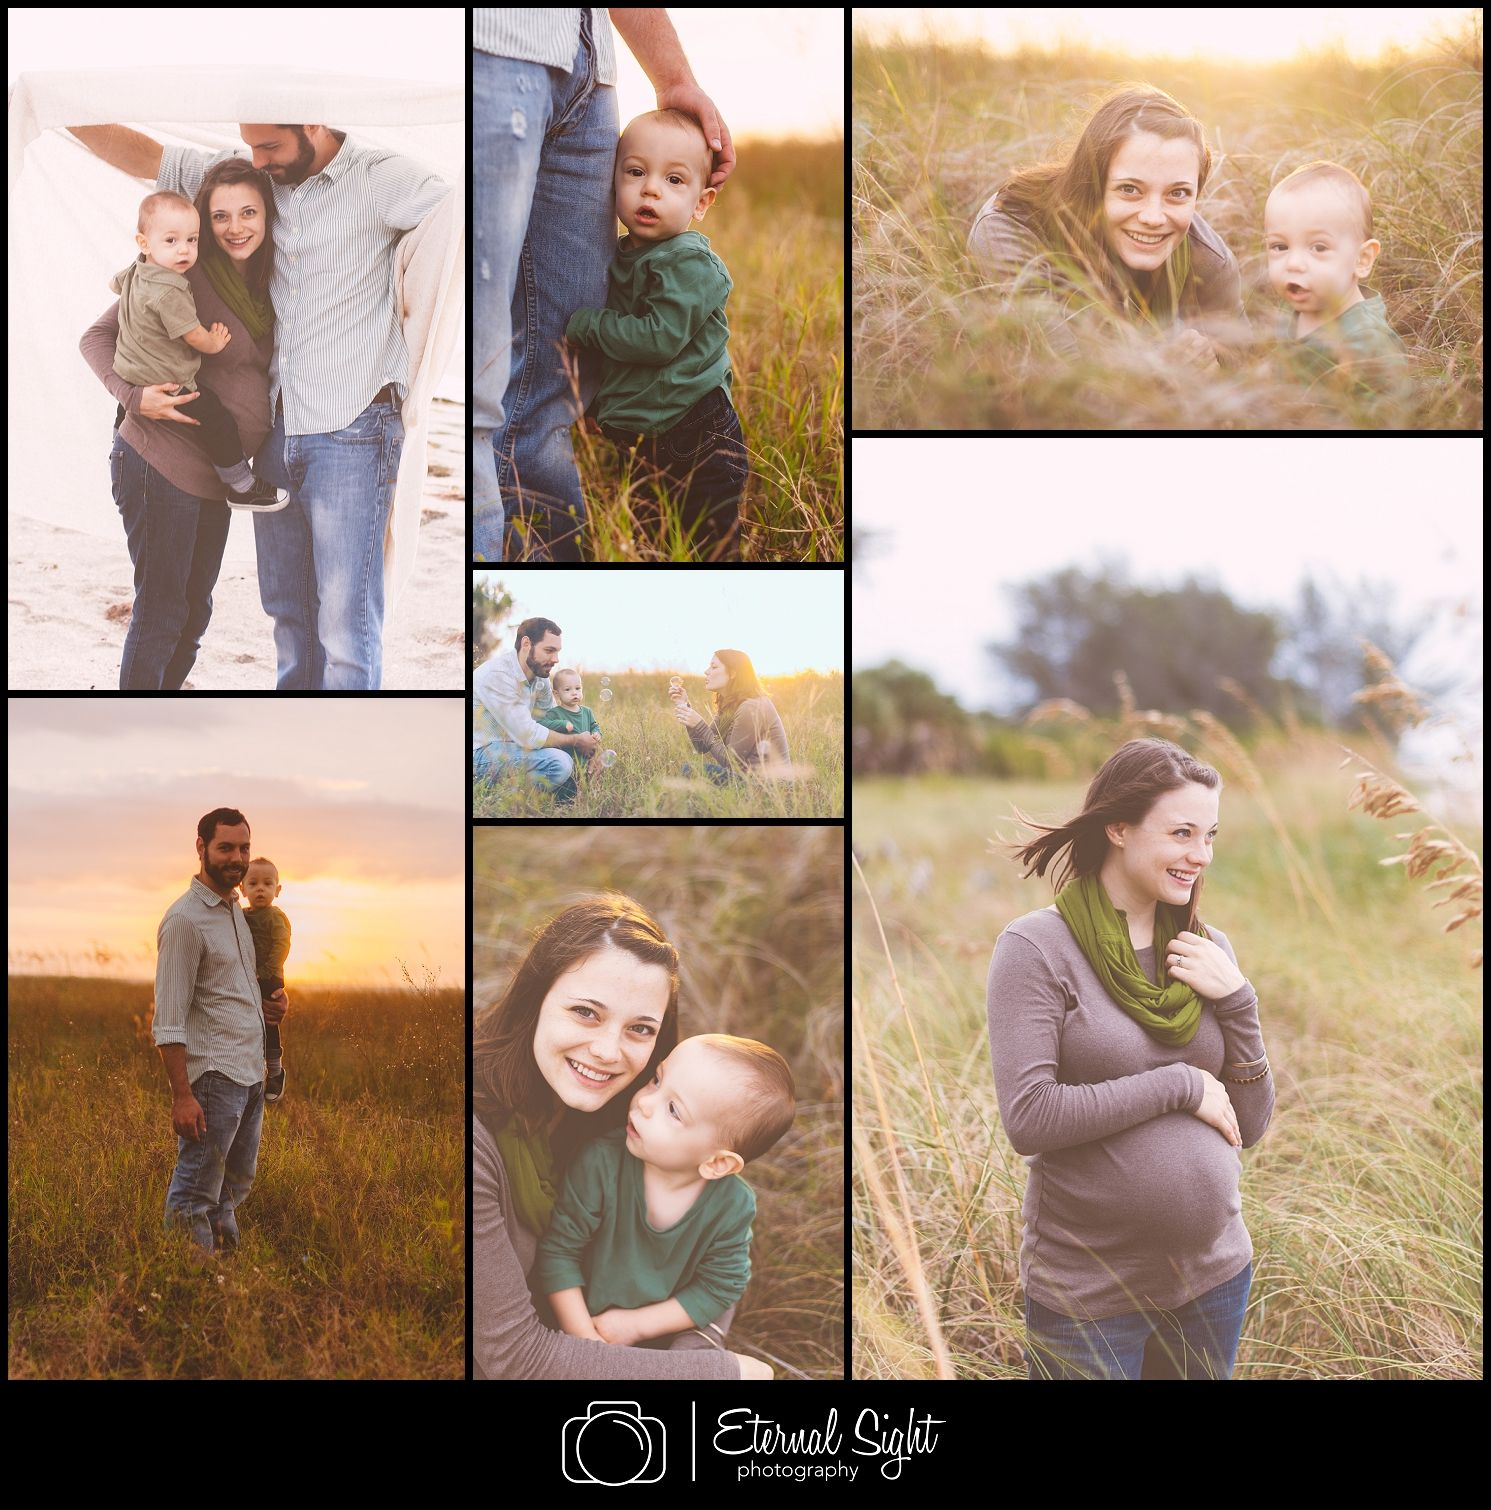 Family/Maternity sunrise photo session. Film look. Taken at Fort Desoto beach in Tampa Bay